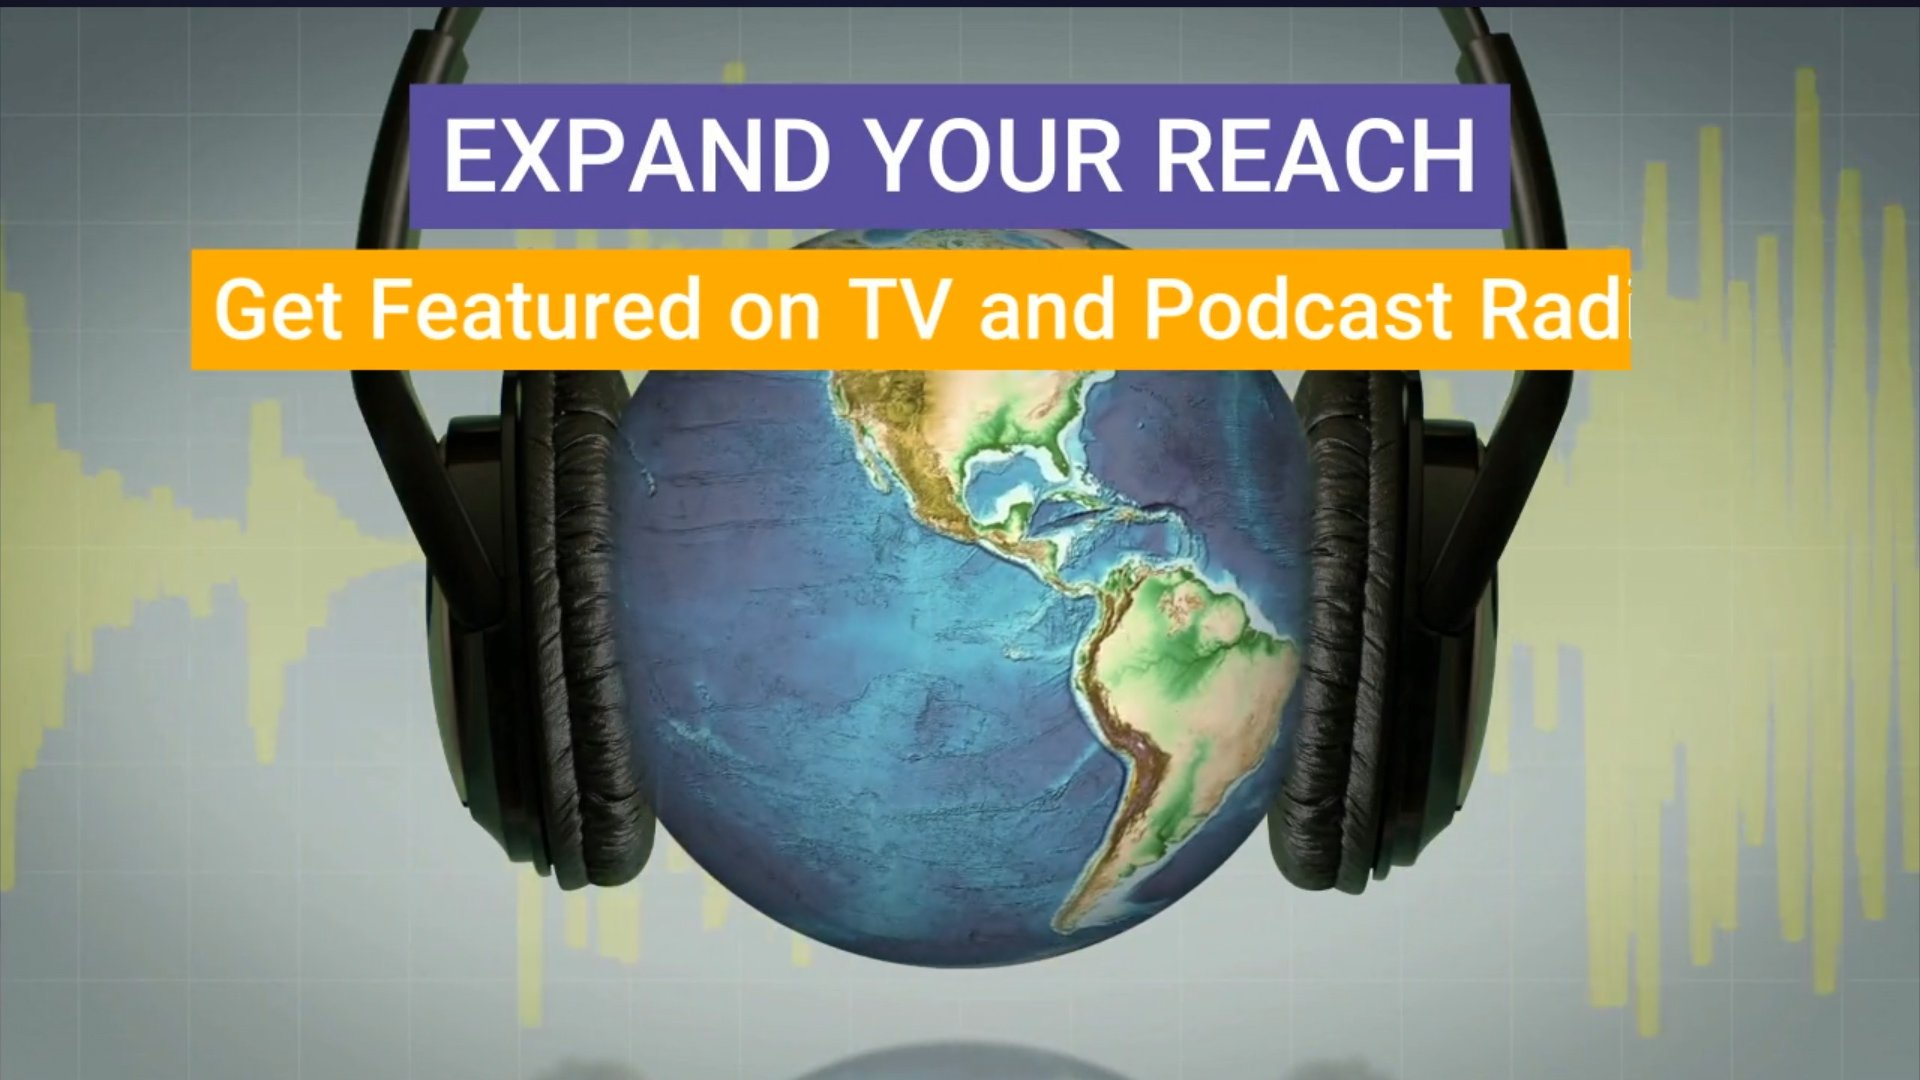 Get Featured On TV and Radio